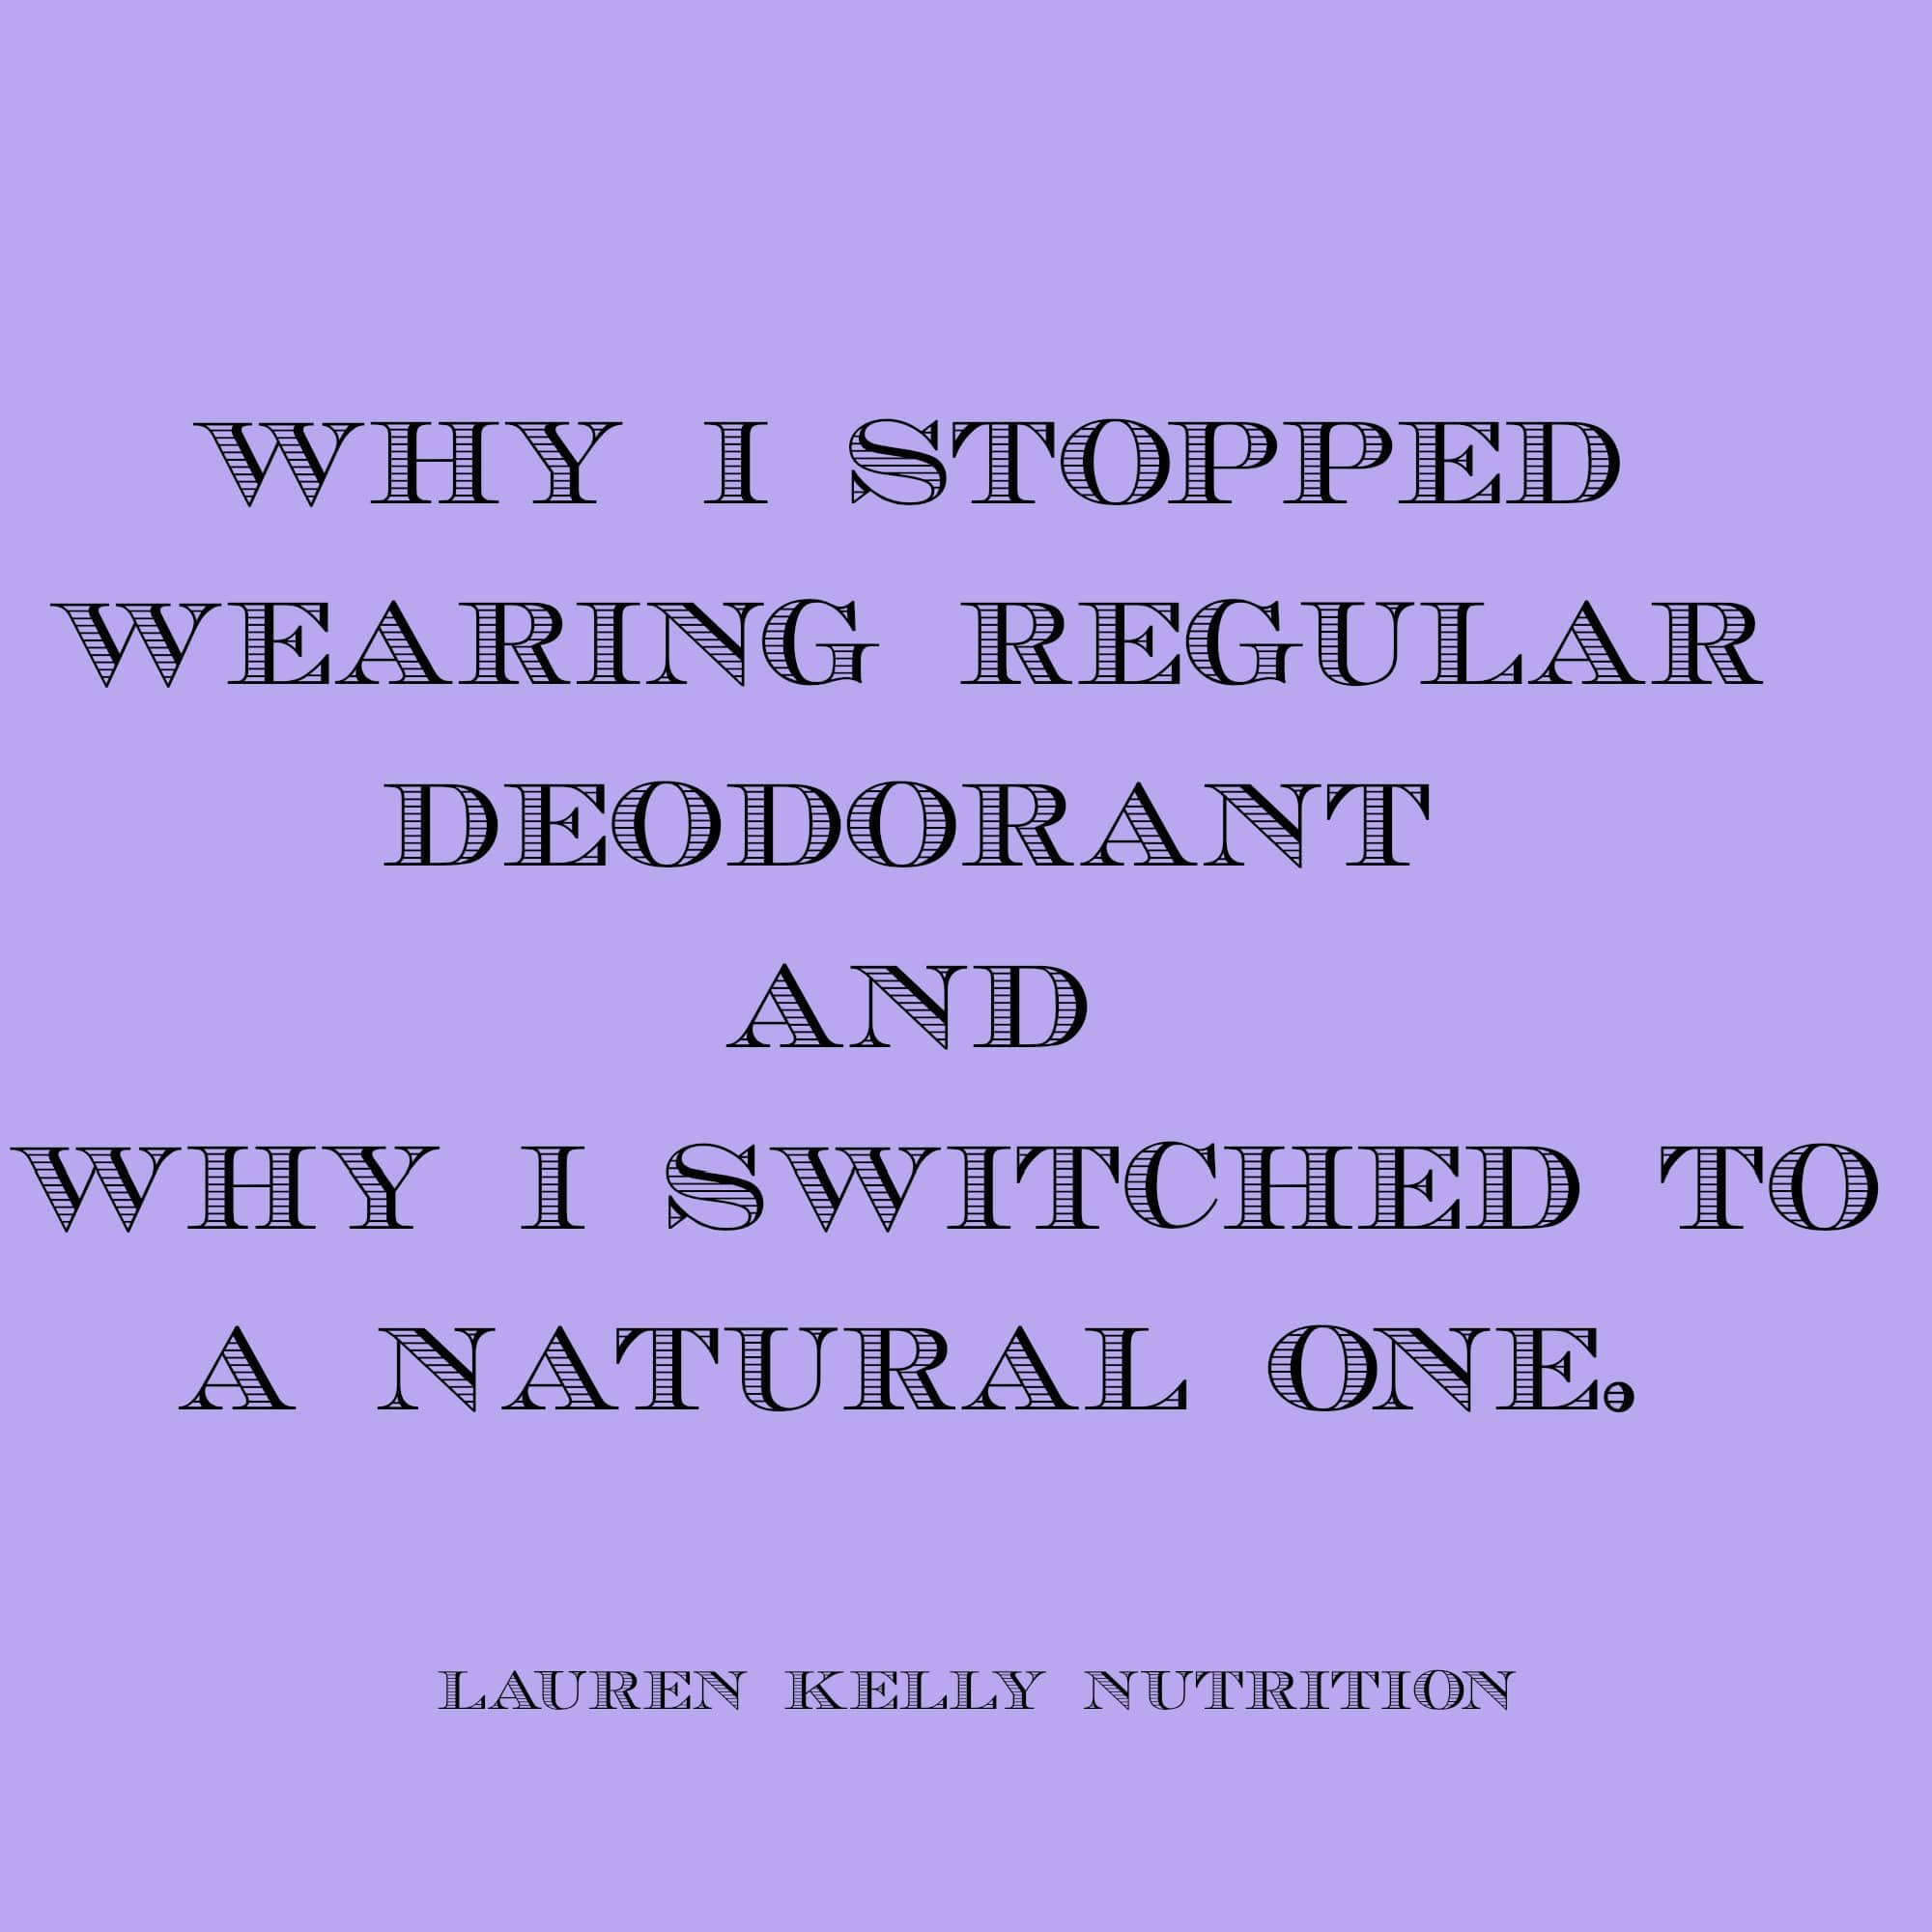 Why I Stopped Wearing Regular Deodorant from Lauren Kelly Nutrition